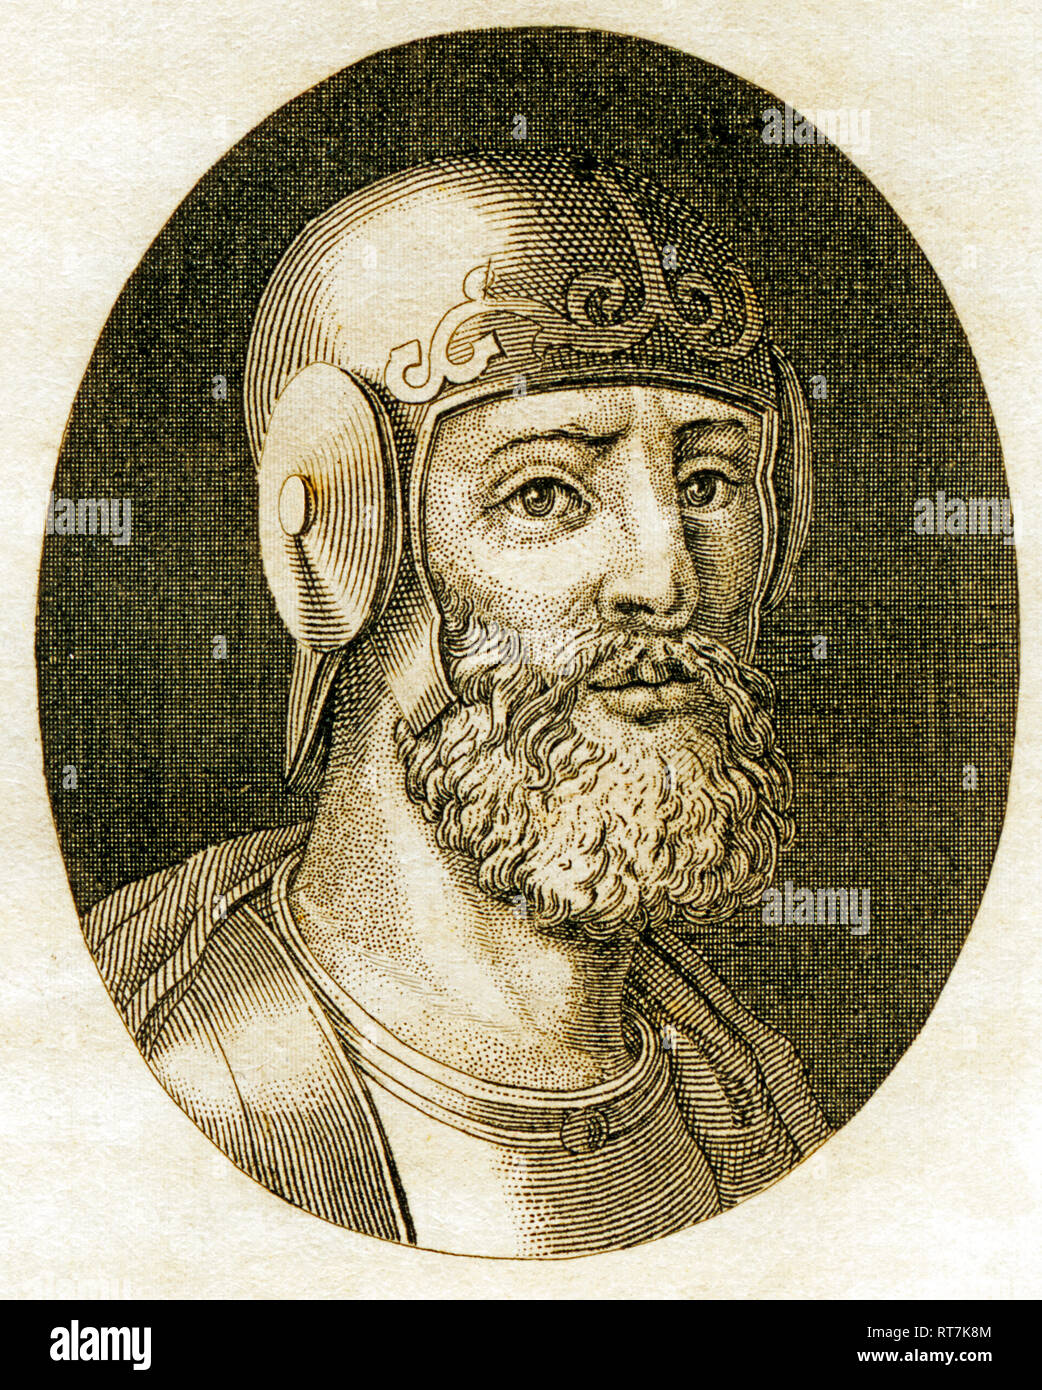 Belisarius, general of the Byzantine Empire, strategist of the Emperor Justinian, copperplate engraving from Strahlheim, about 1840., Artist's Copyright has not to be cleared - Stock Image